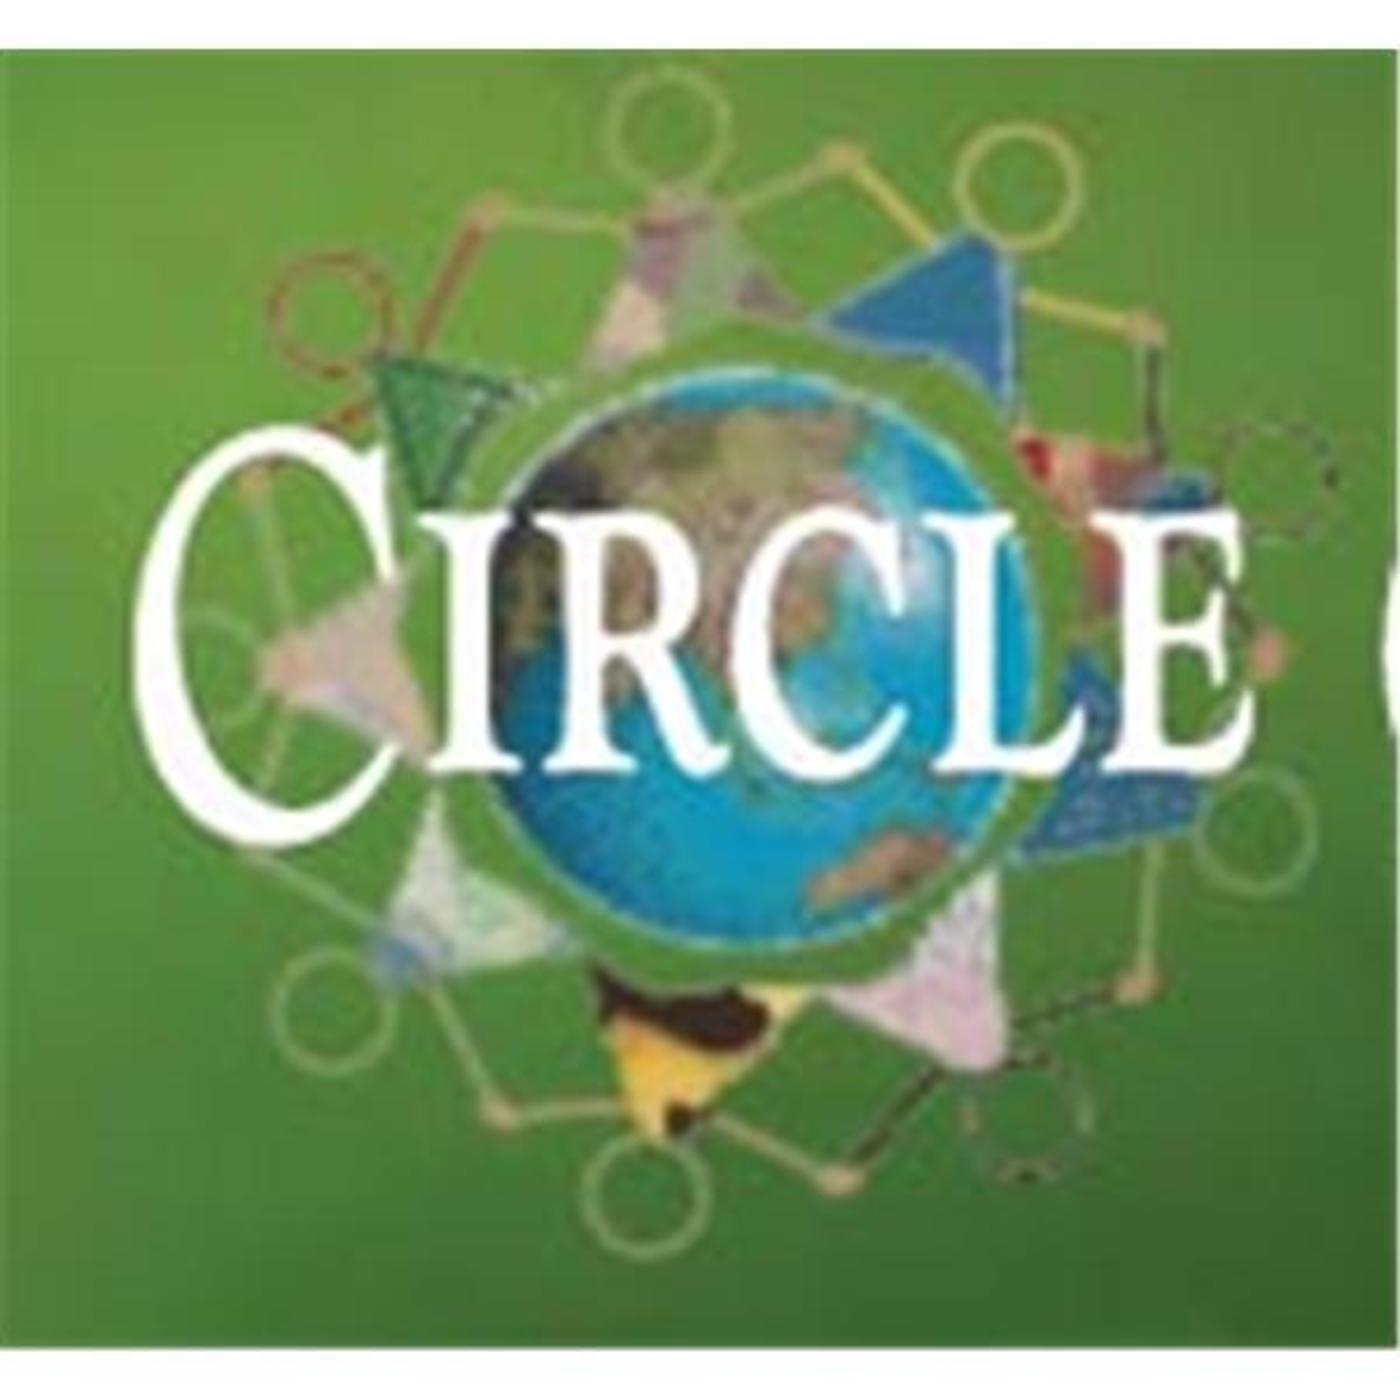 Circle Connections: Women Connecting to Act-In, Act-Up, Act-Out & Act-Together